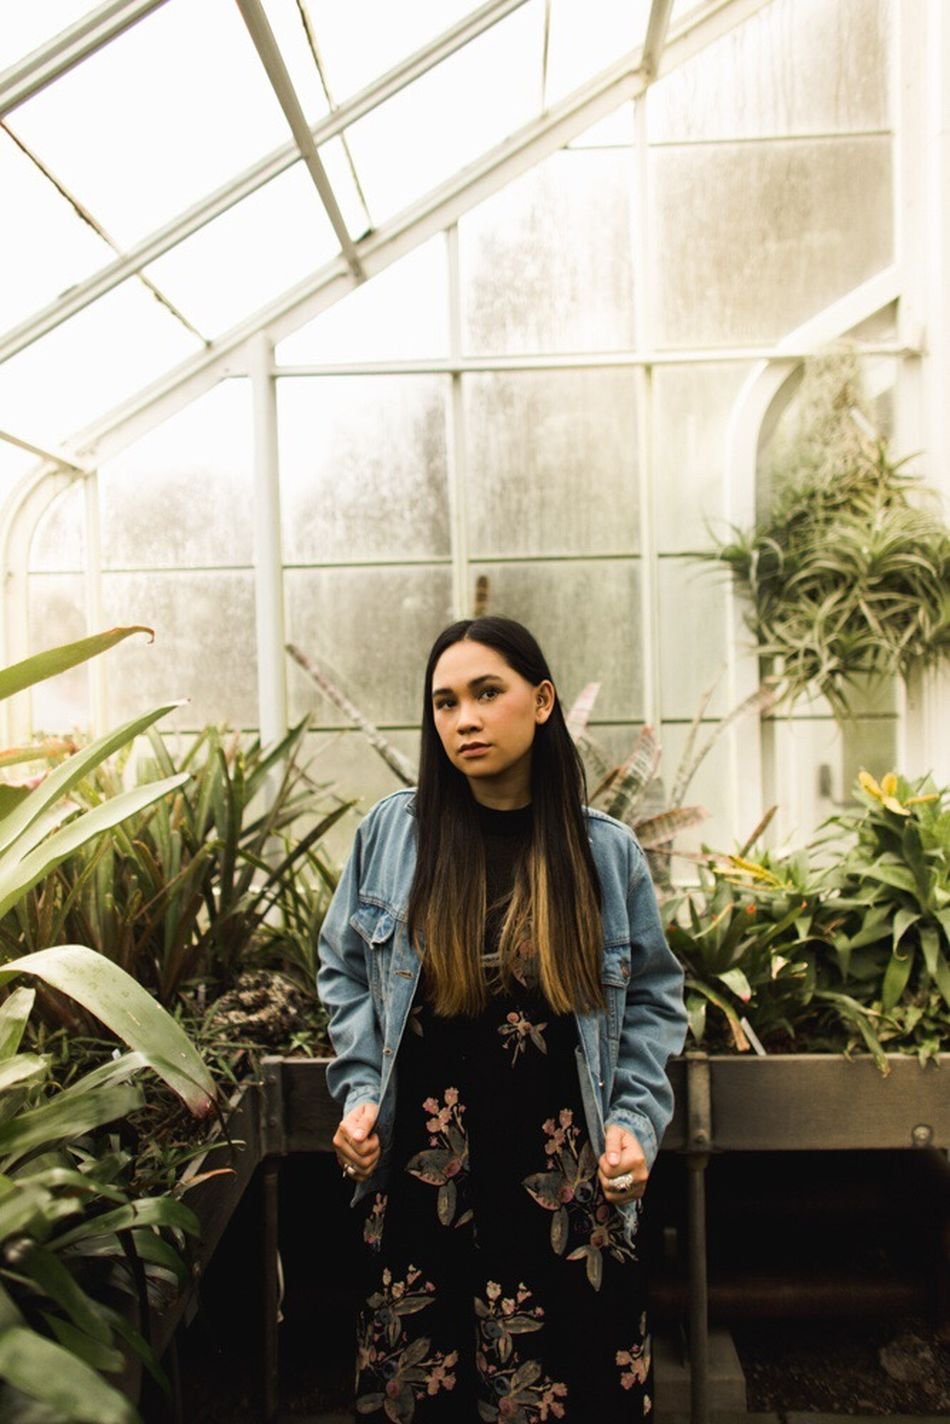 Portrait Indoors  Telling Stories Differently Travel Photography Seattle, Washington Seattle Greenhouse Share Your Adventure EyeEm Best Shots Photography Adventures Hair Model From My Point Of View